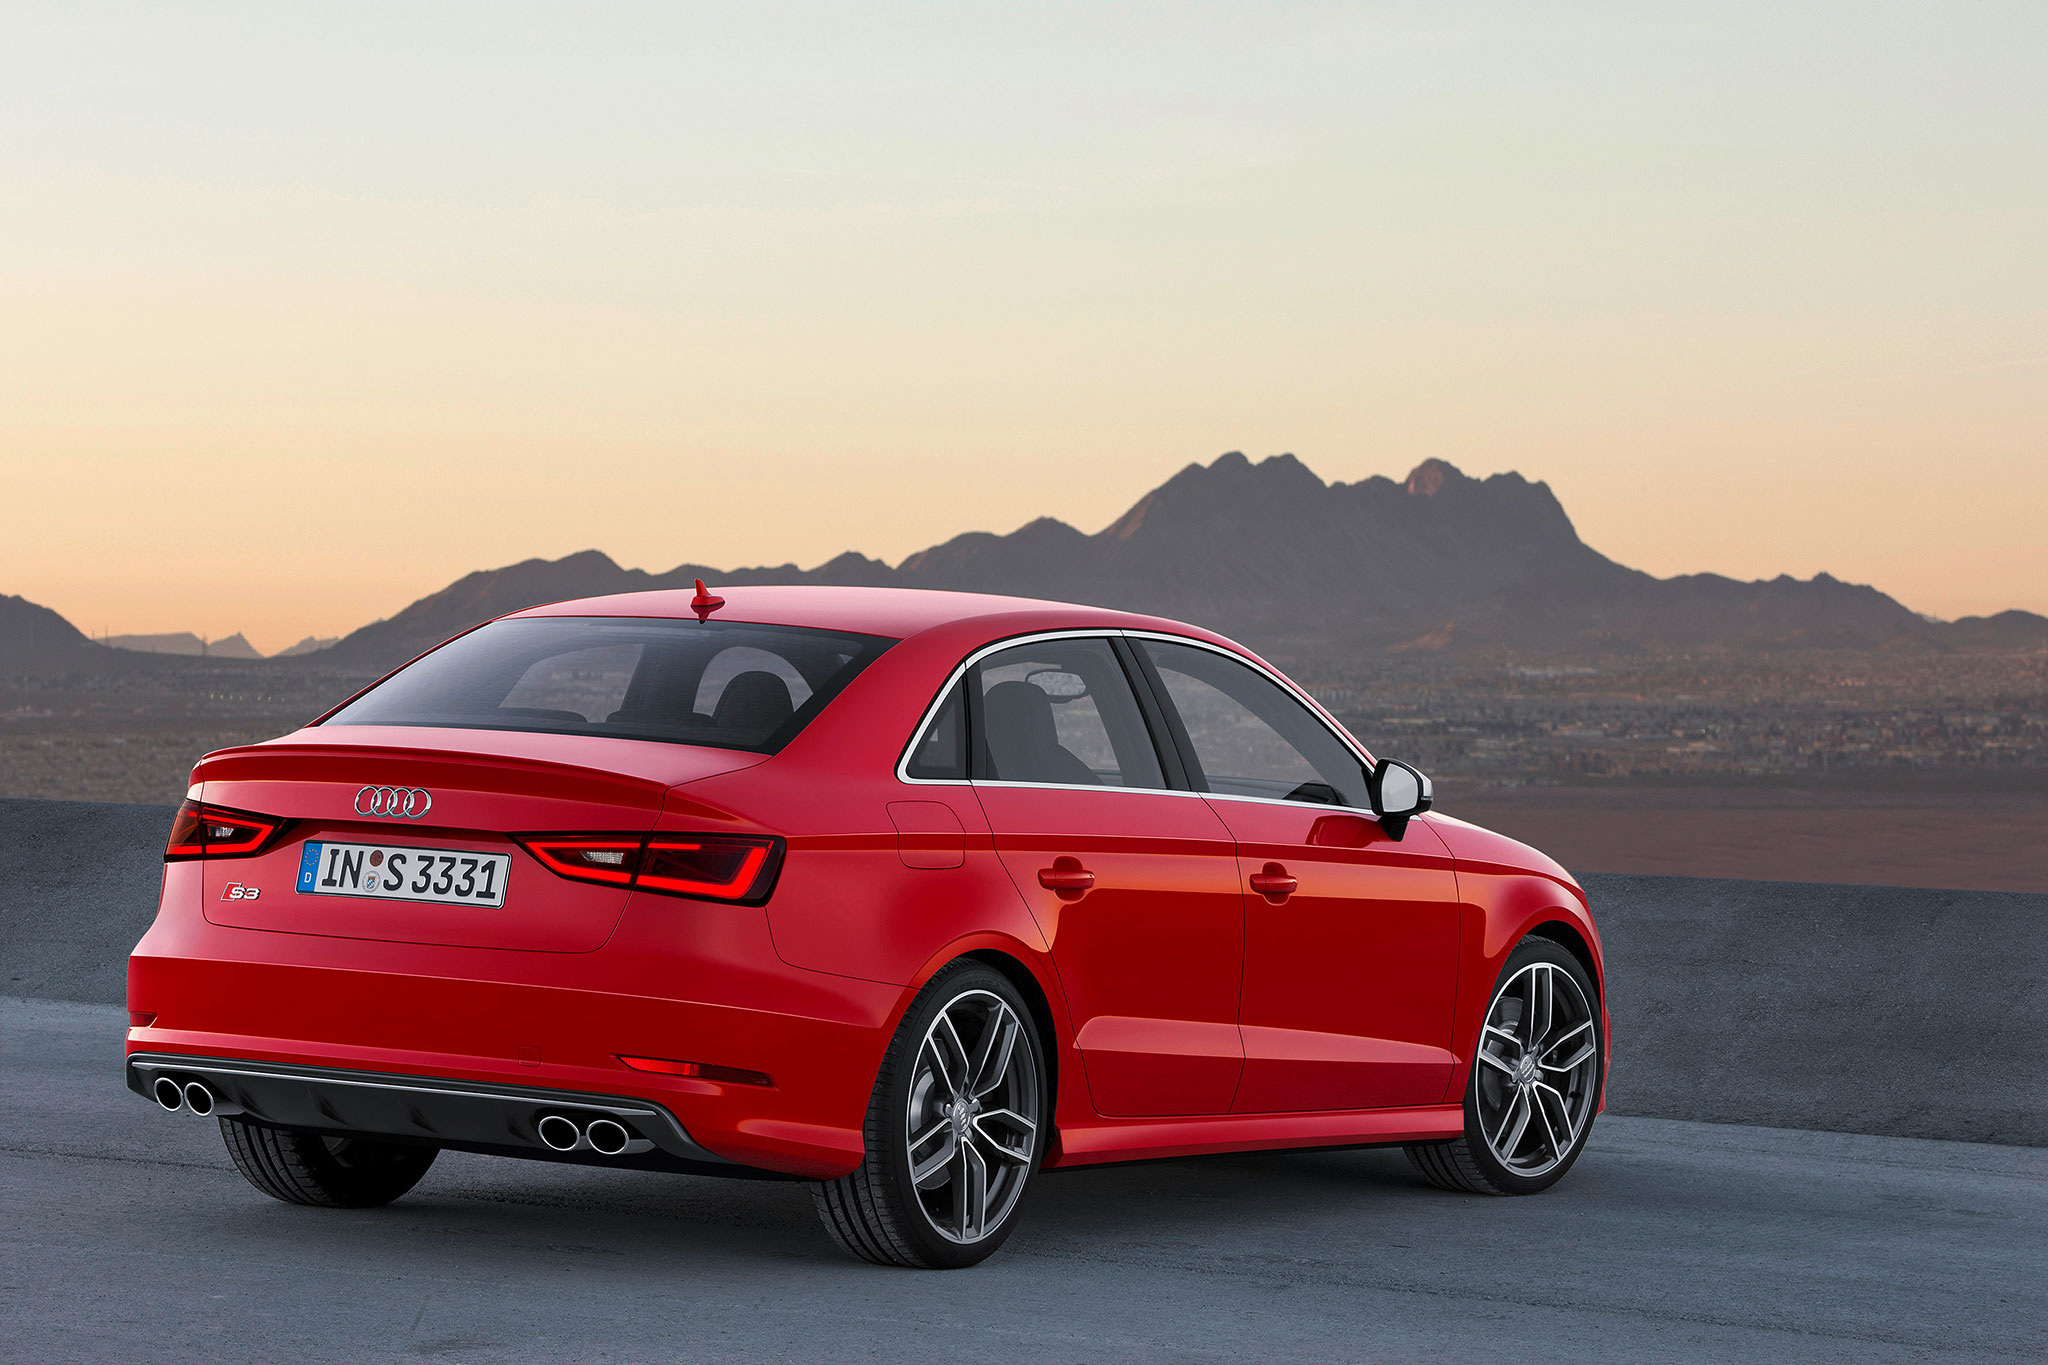 2015 audi a3 pricing and options list detailed - automobile magazine